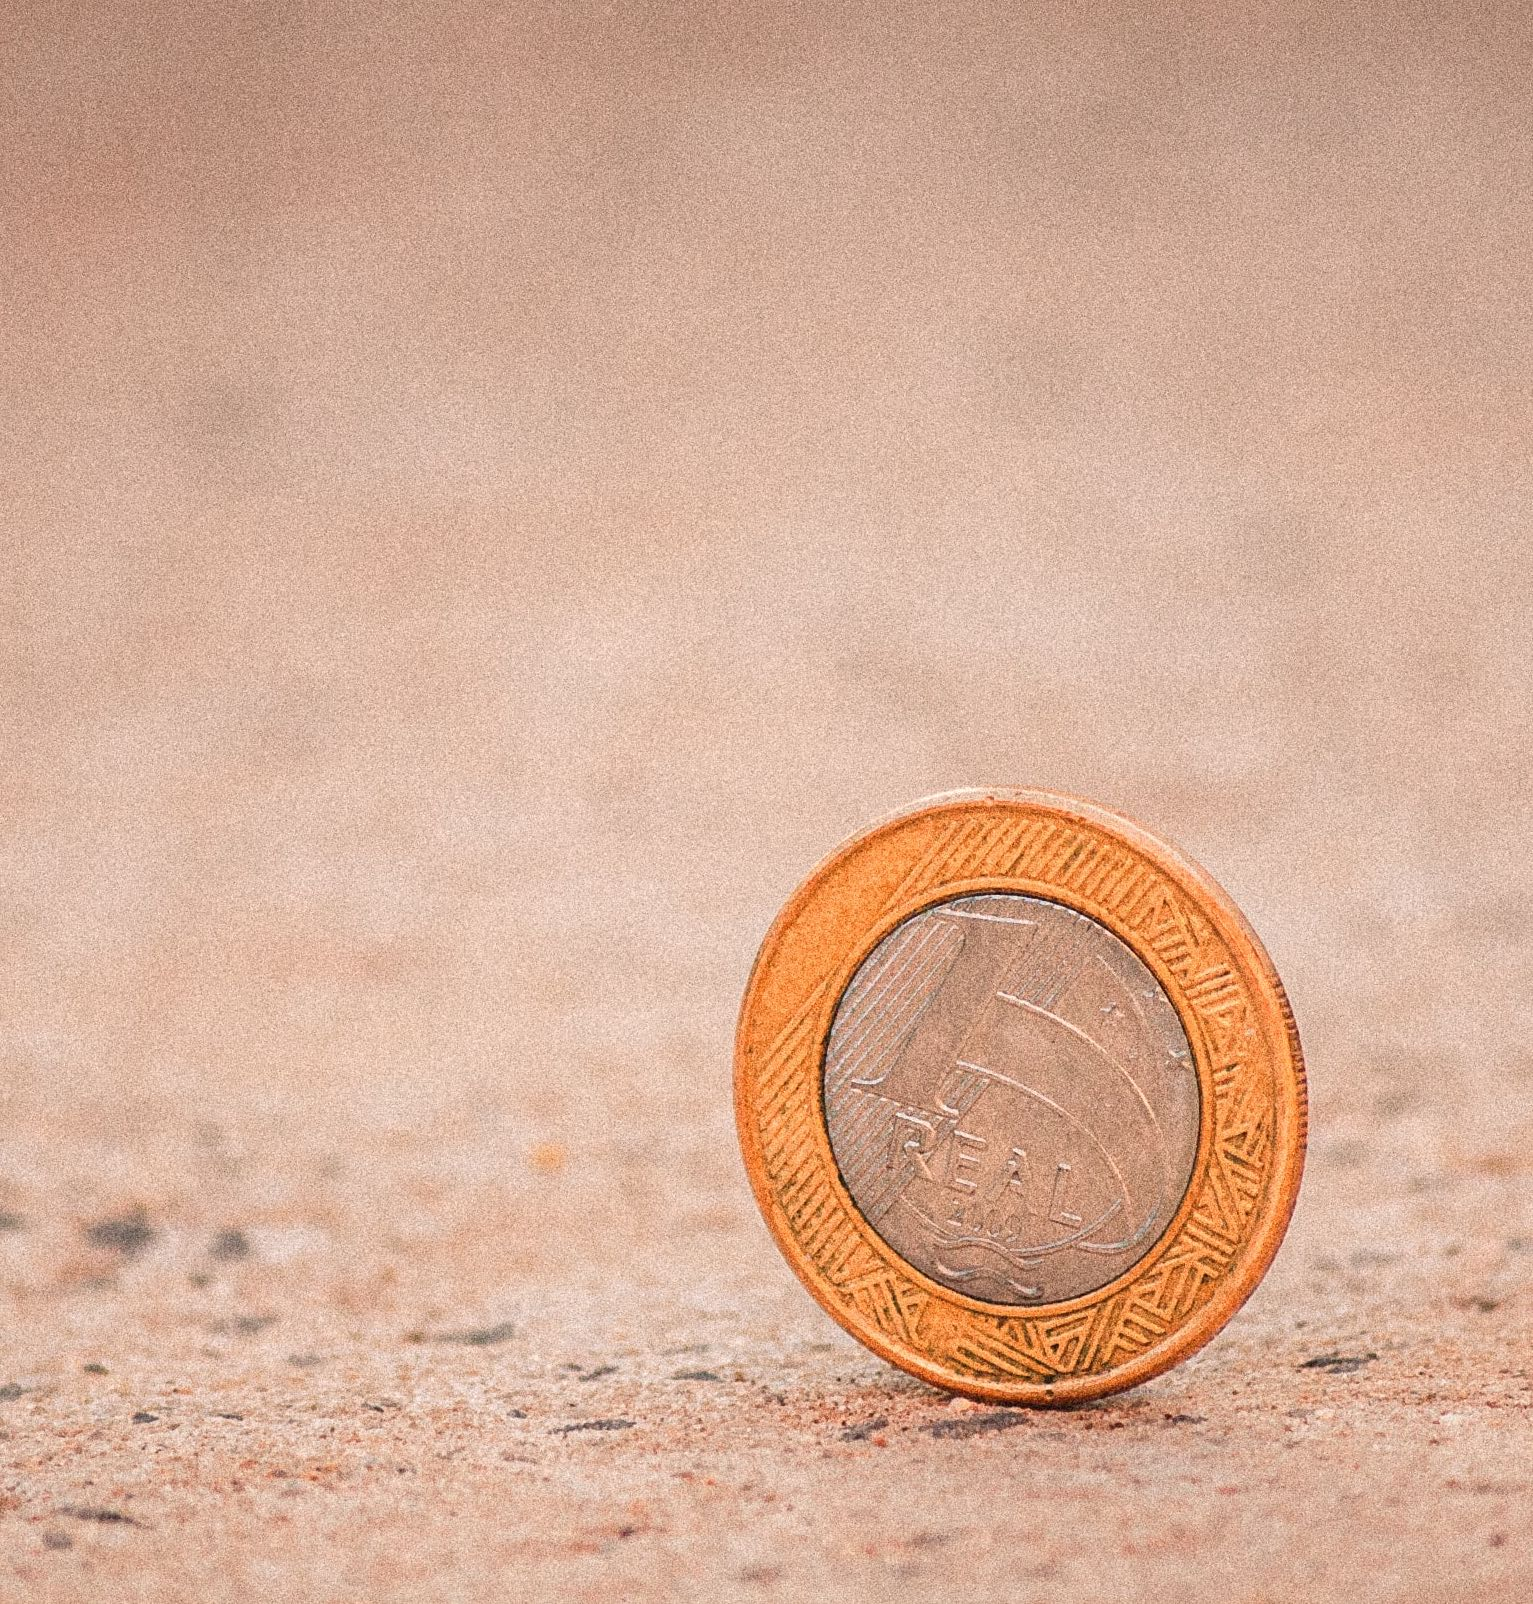 coin standing upright on pavement